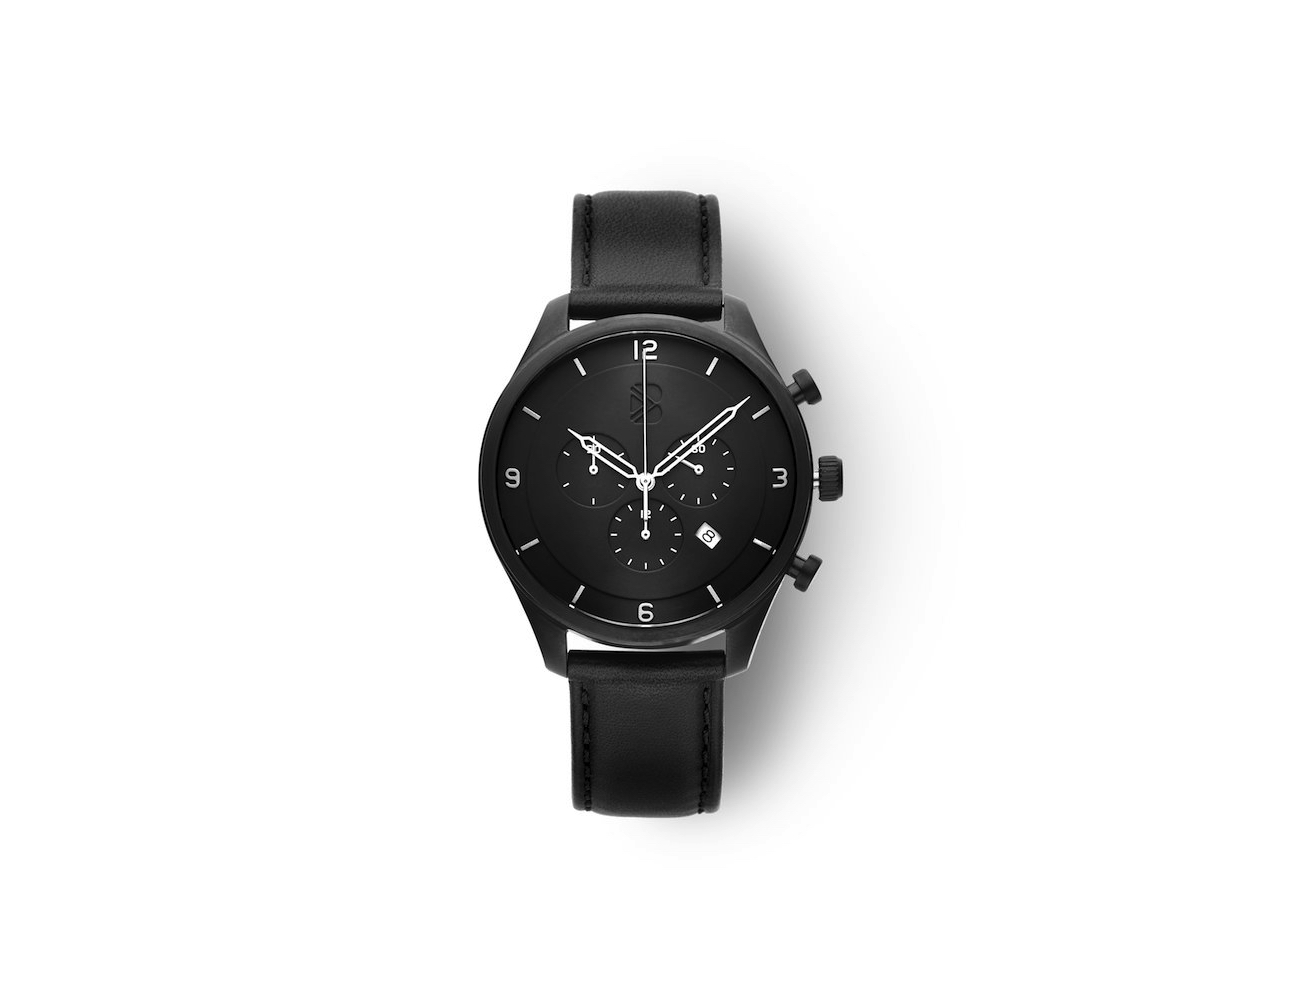 Bolder Watch Gunmetal Black Chronograph